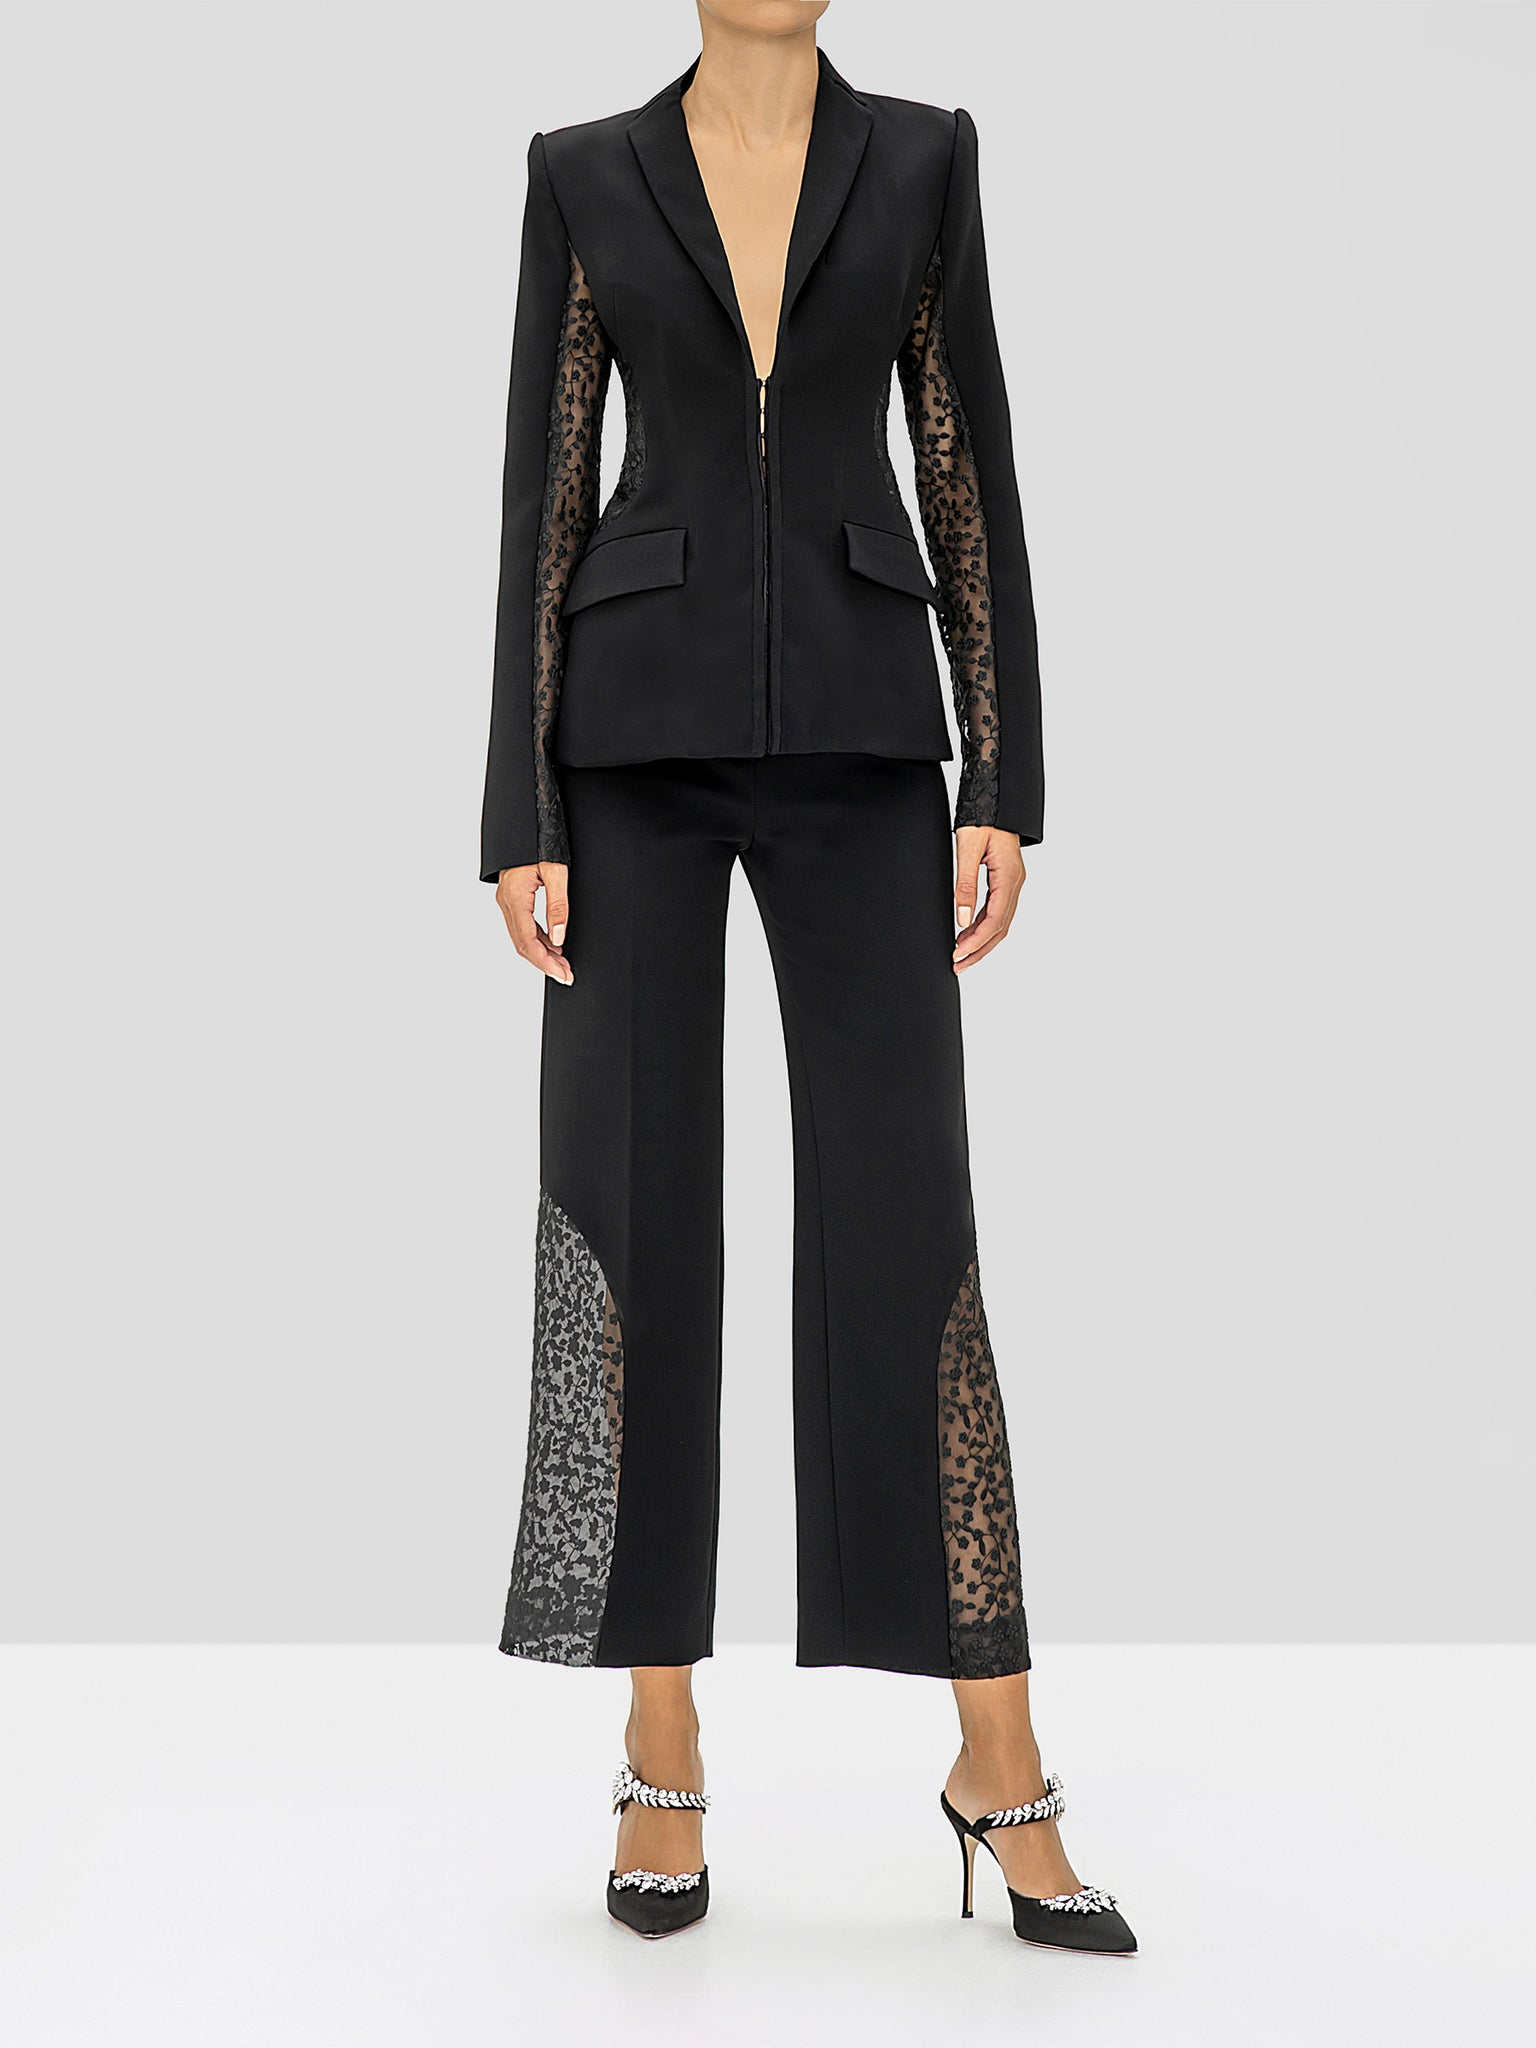 Alexis Amrita Jacket and Novata Pants in Black from the Fall Winter 2019 Ready To Wear Collection